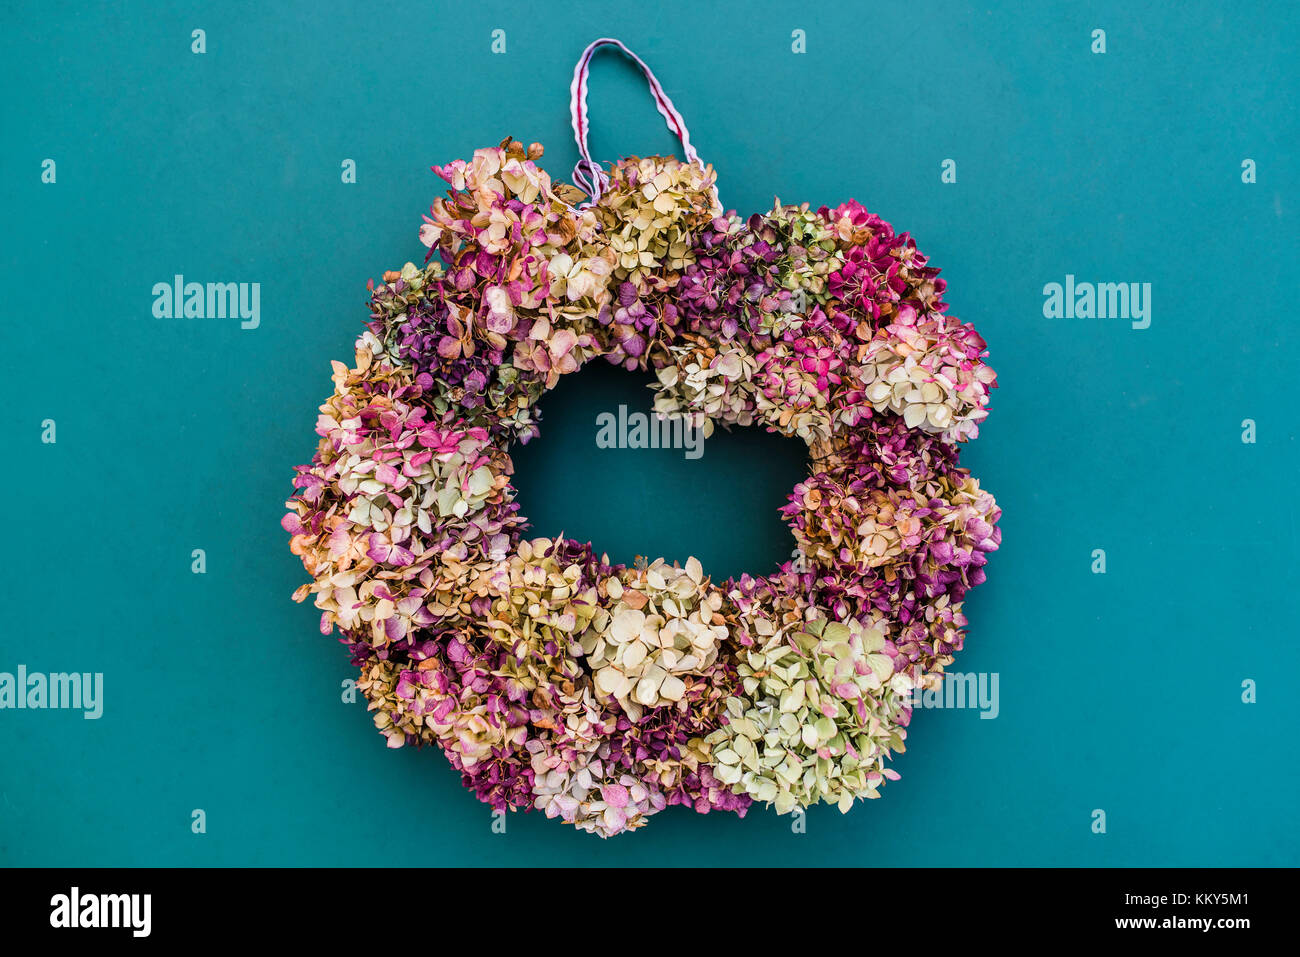 Still life, autumnal decoration, wreath with hydrangea blossoms - Stock Image